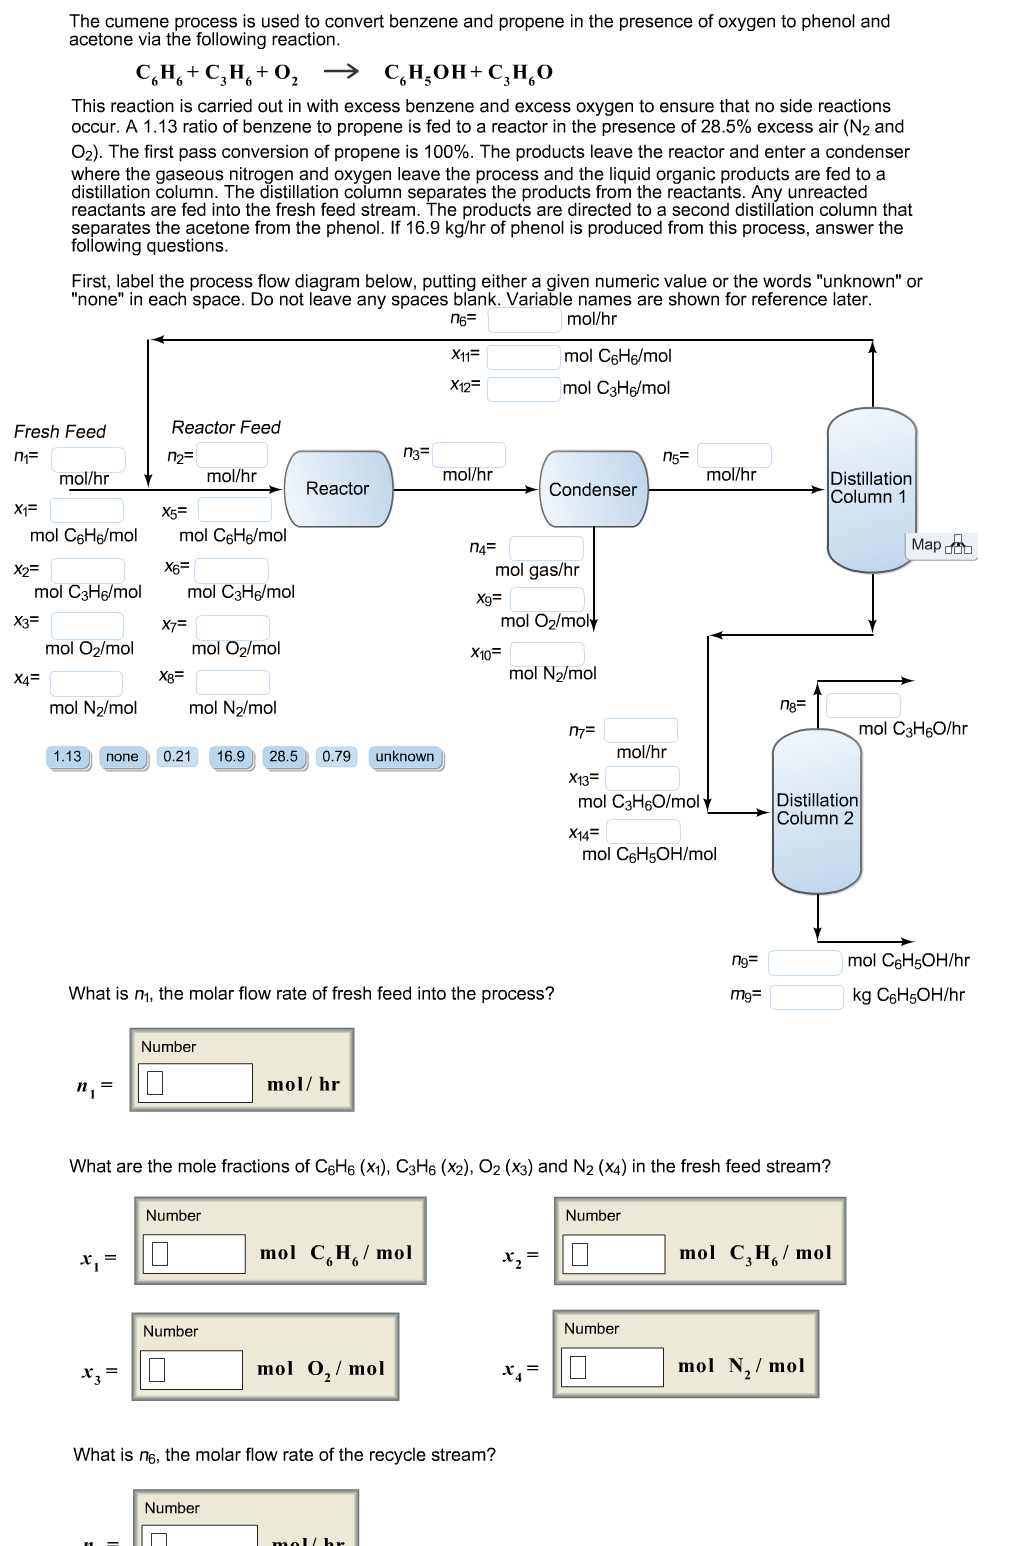 The Cumene Process Is Used To Convert Benzene And